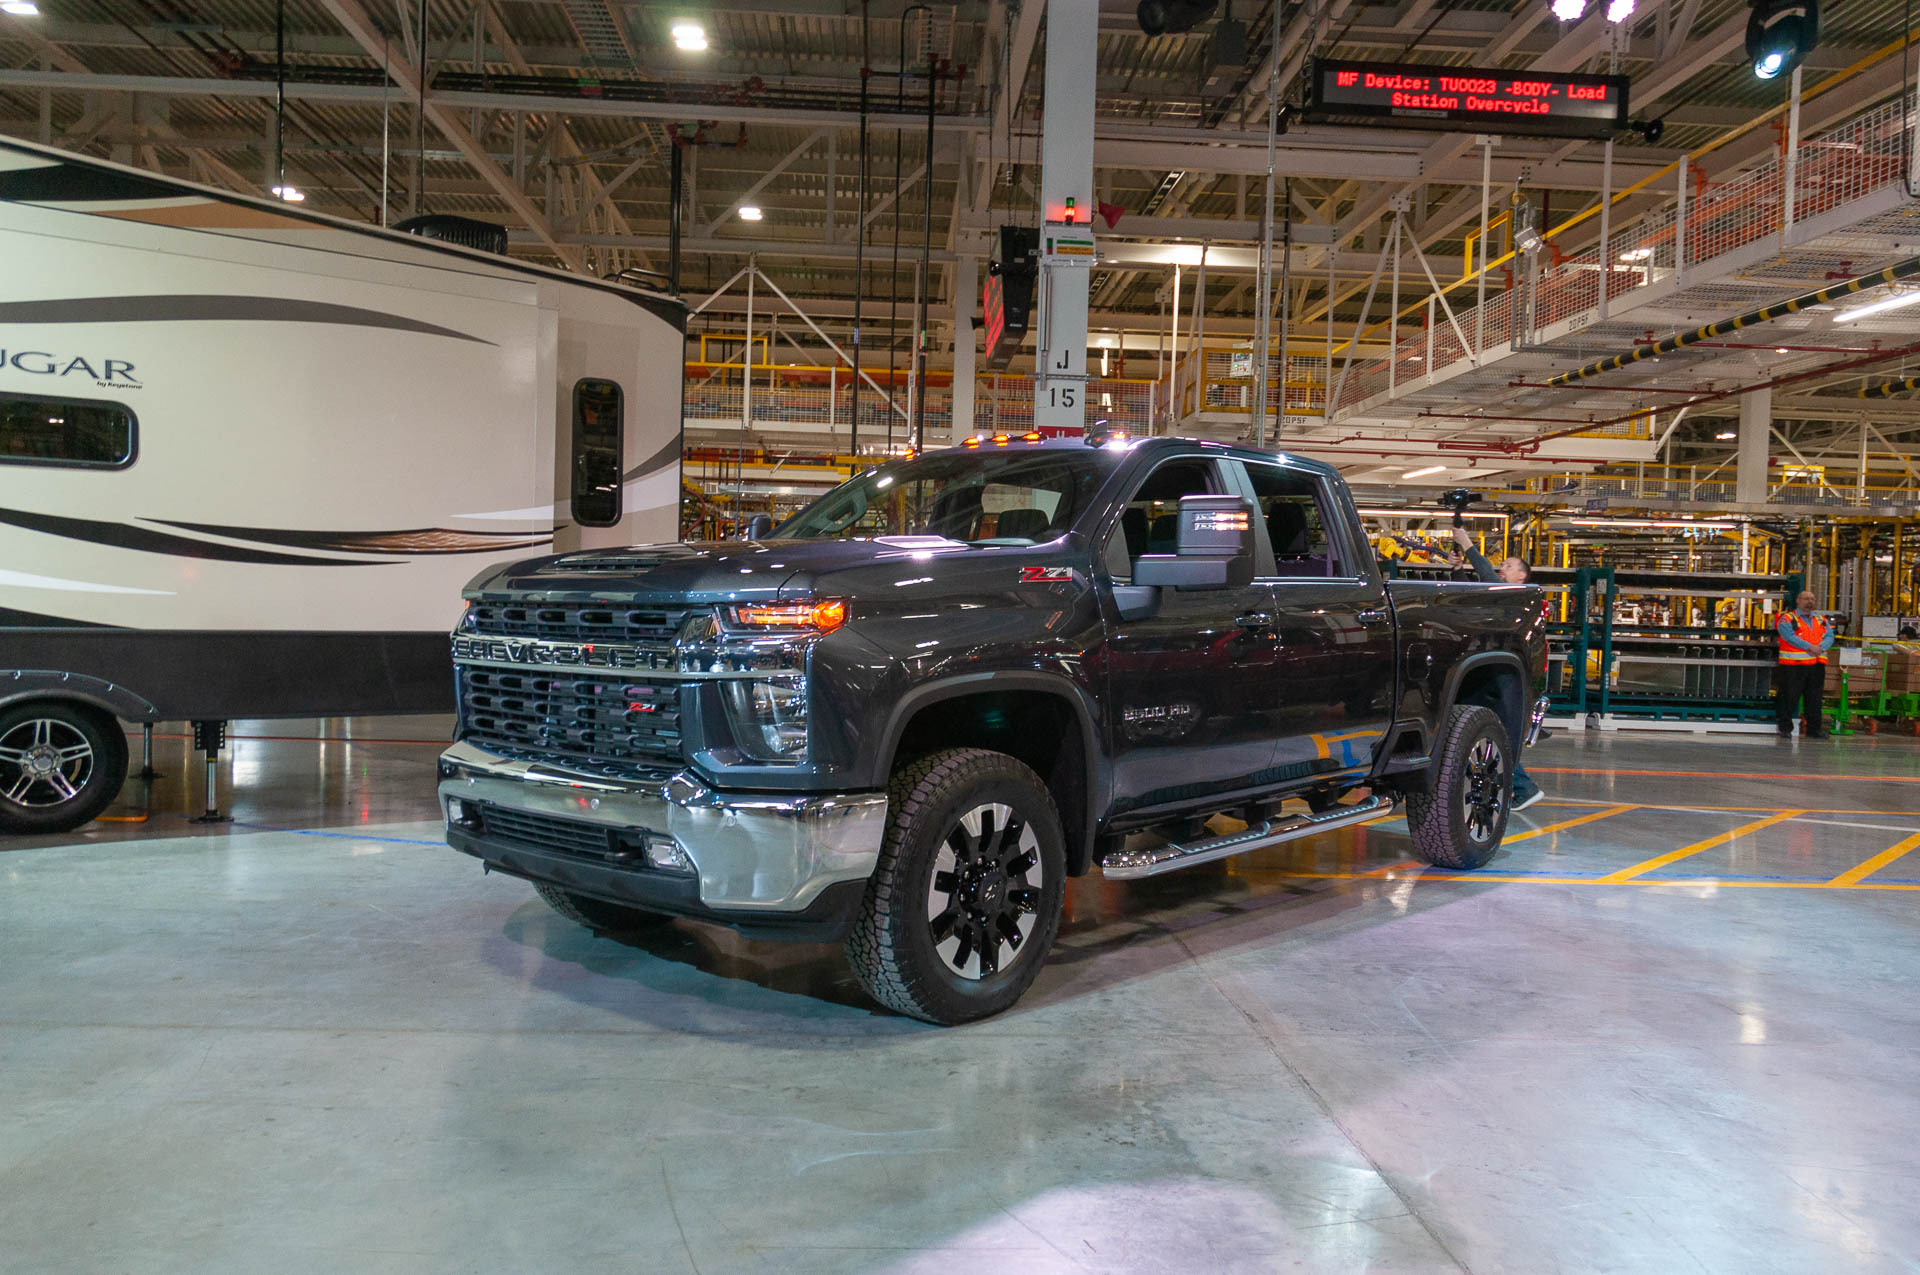 2020 Chevrolet Silverado 2500hd Chevy Review Ratings